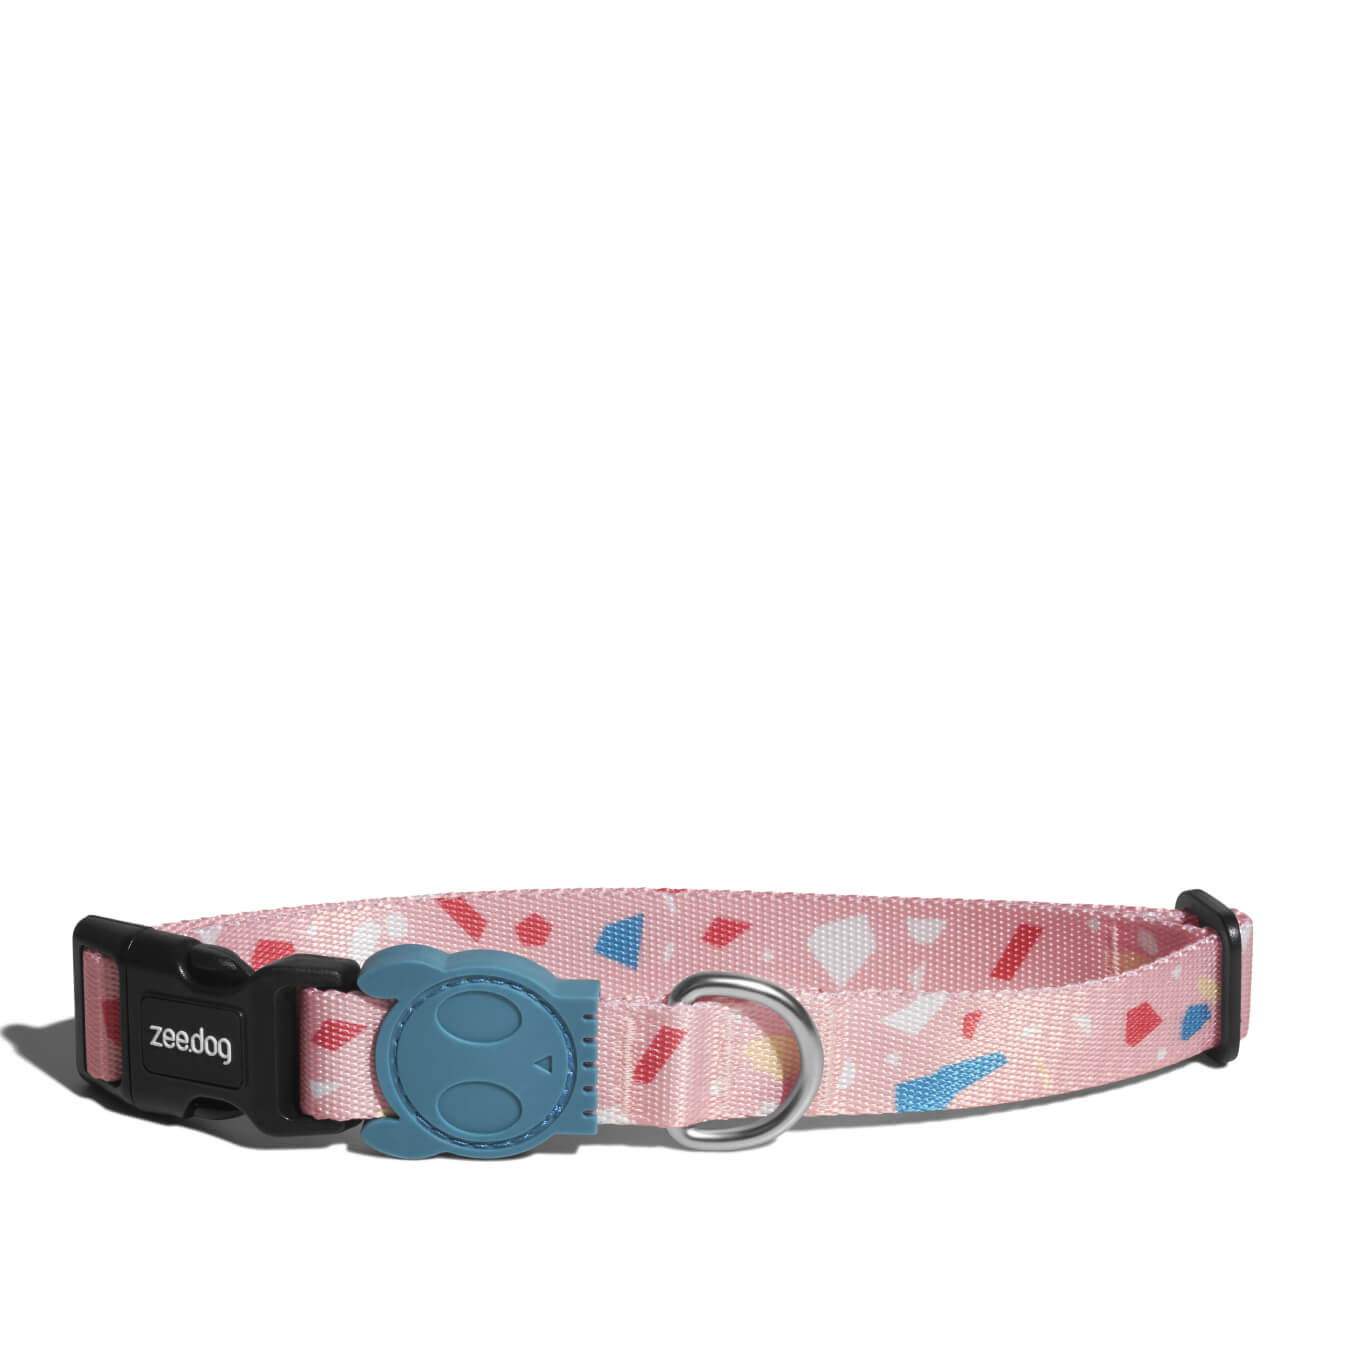 Zee.Dog Terrazzo Rose Dog Collar - 20, Collars, Dogs, Walking, Zee.Dog - Vanillapup - Online Pet Shop